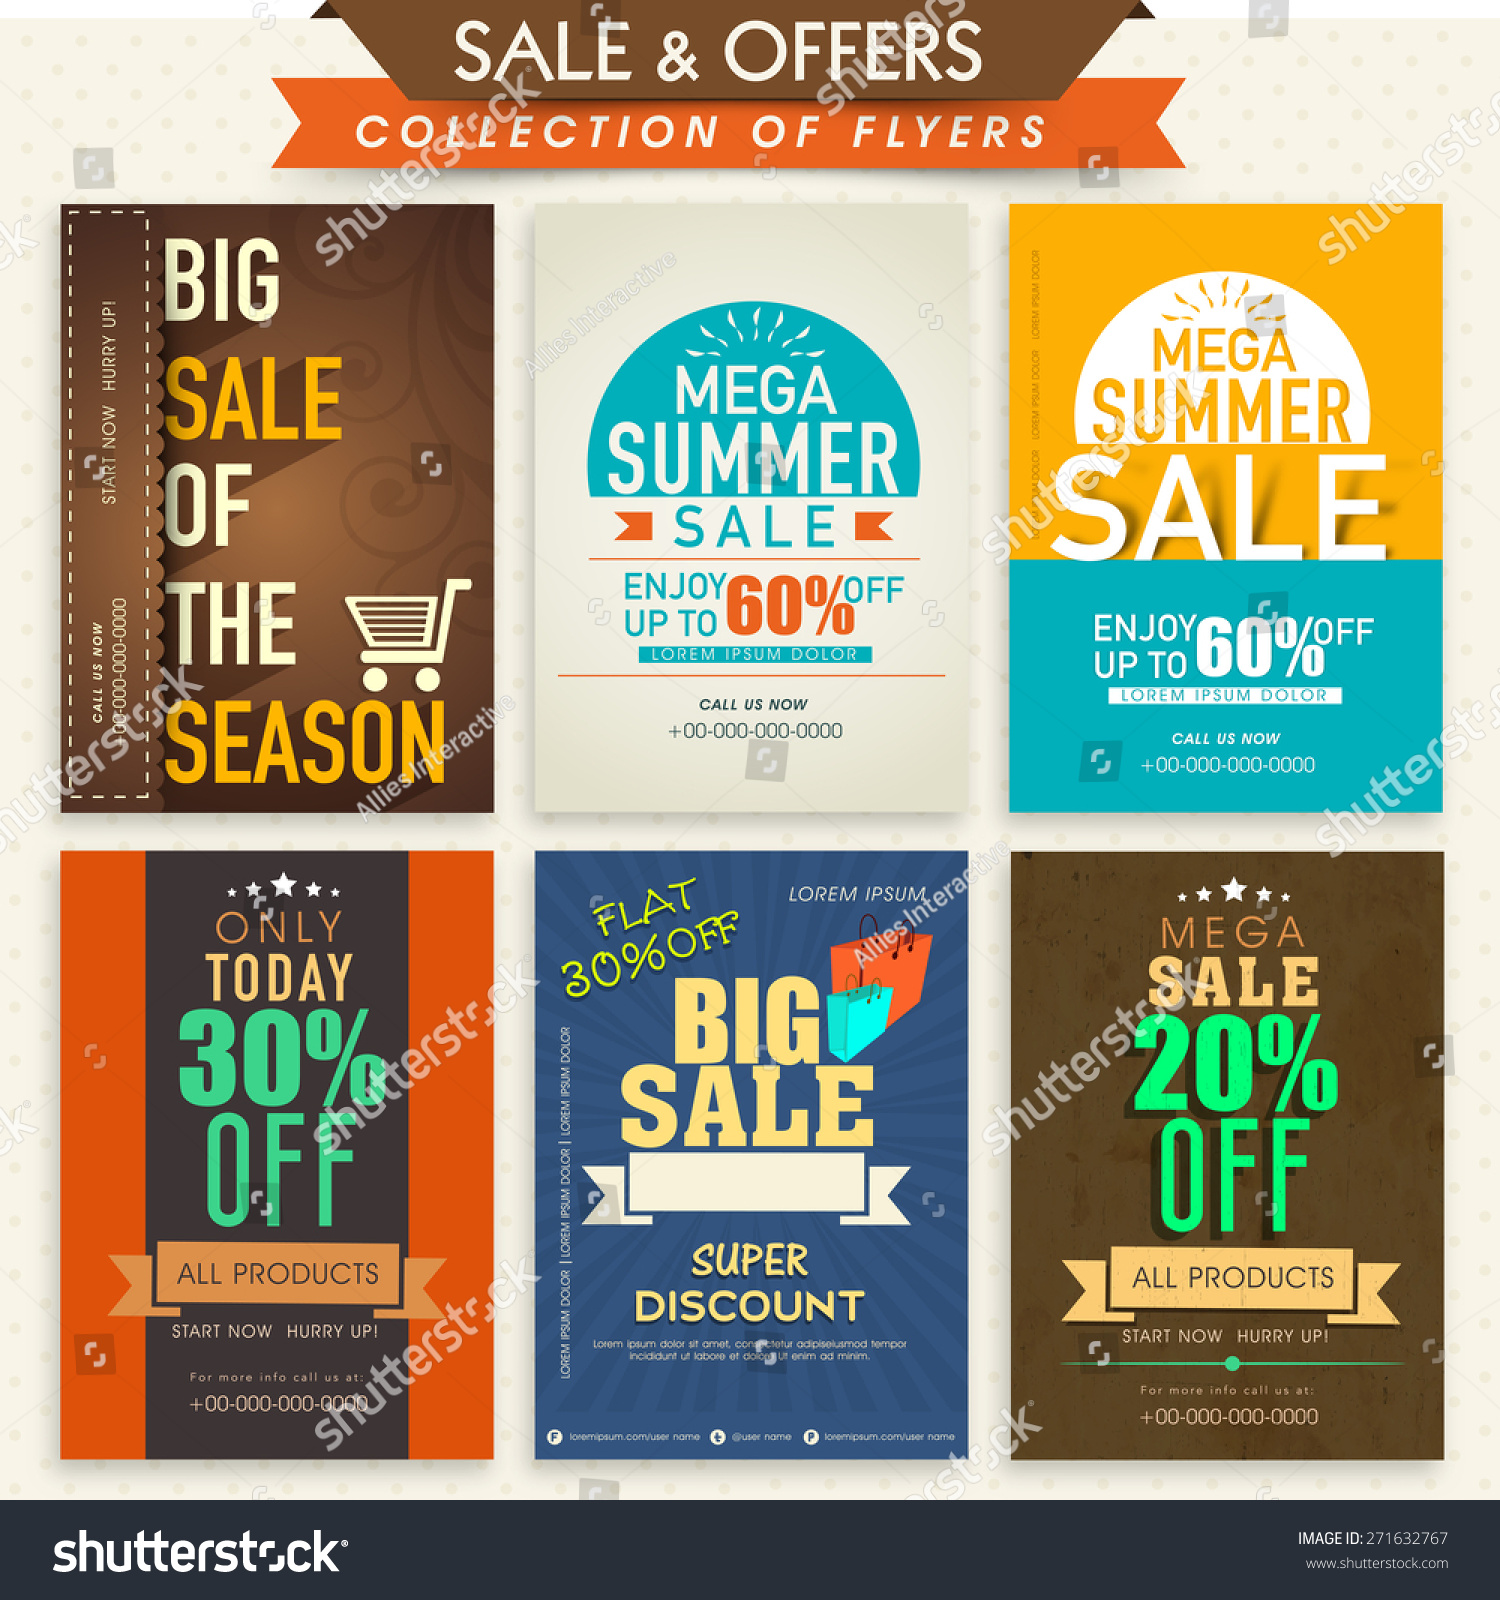 template banner flyers set big stock vector  template banner or flyers set for big attractive discount offers